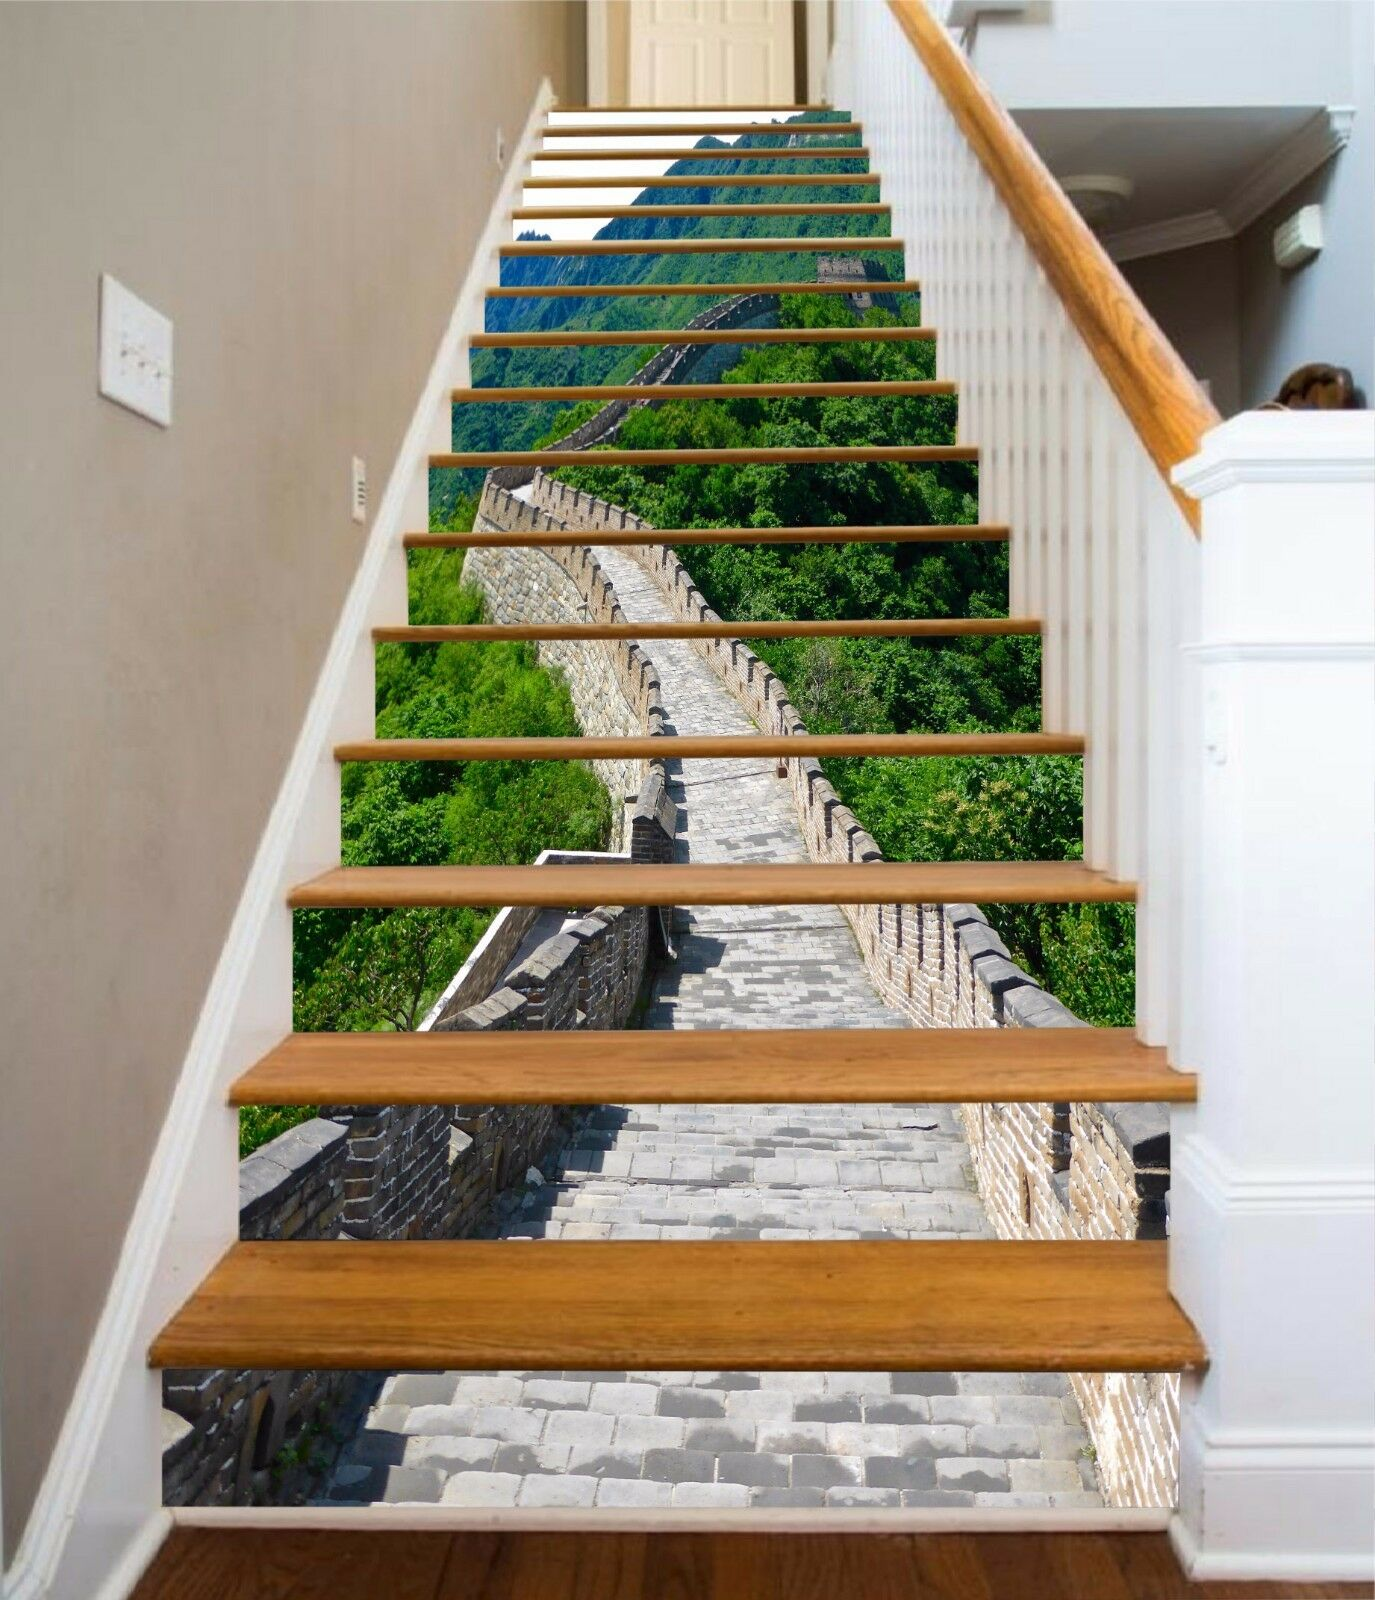 3D The Great Wall Stair Risers Decoration Photo Mural Vinyl Decal Wallpaper AU